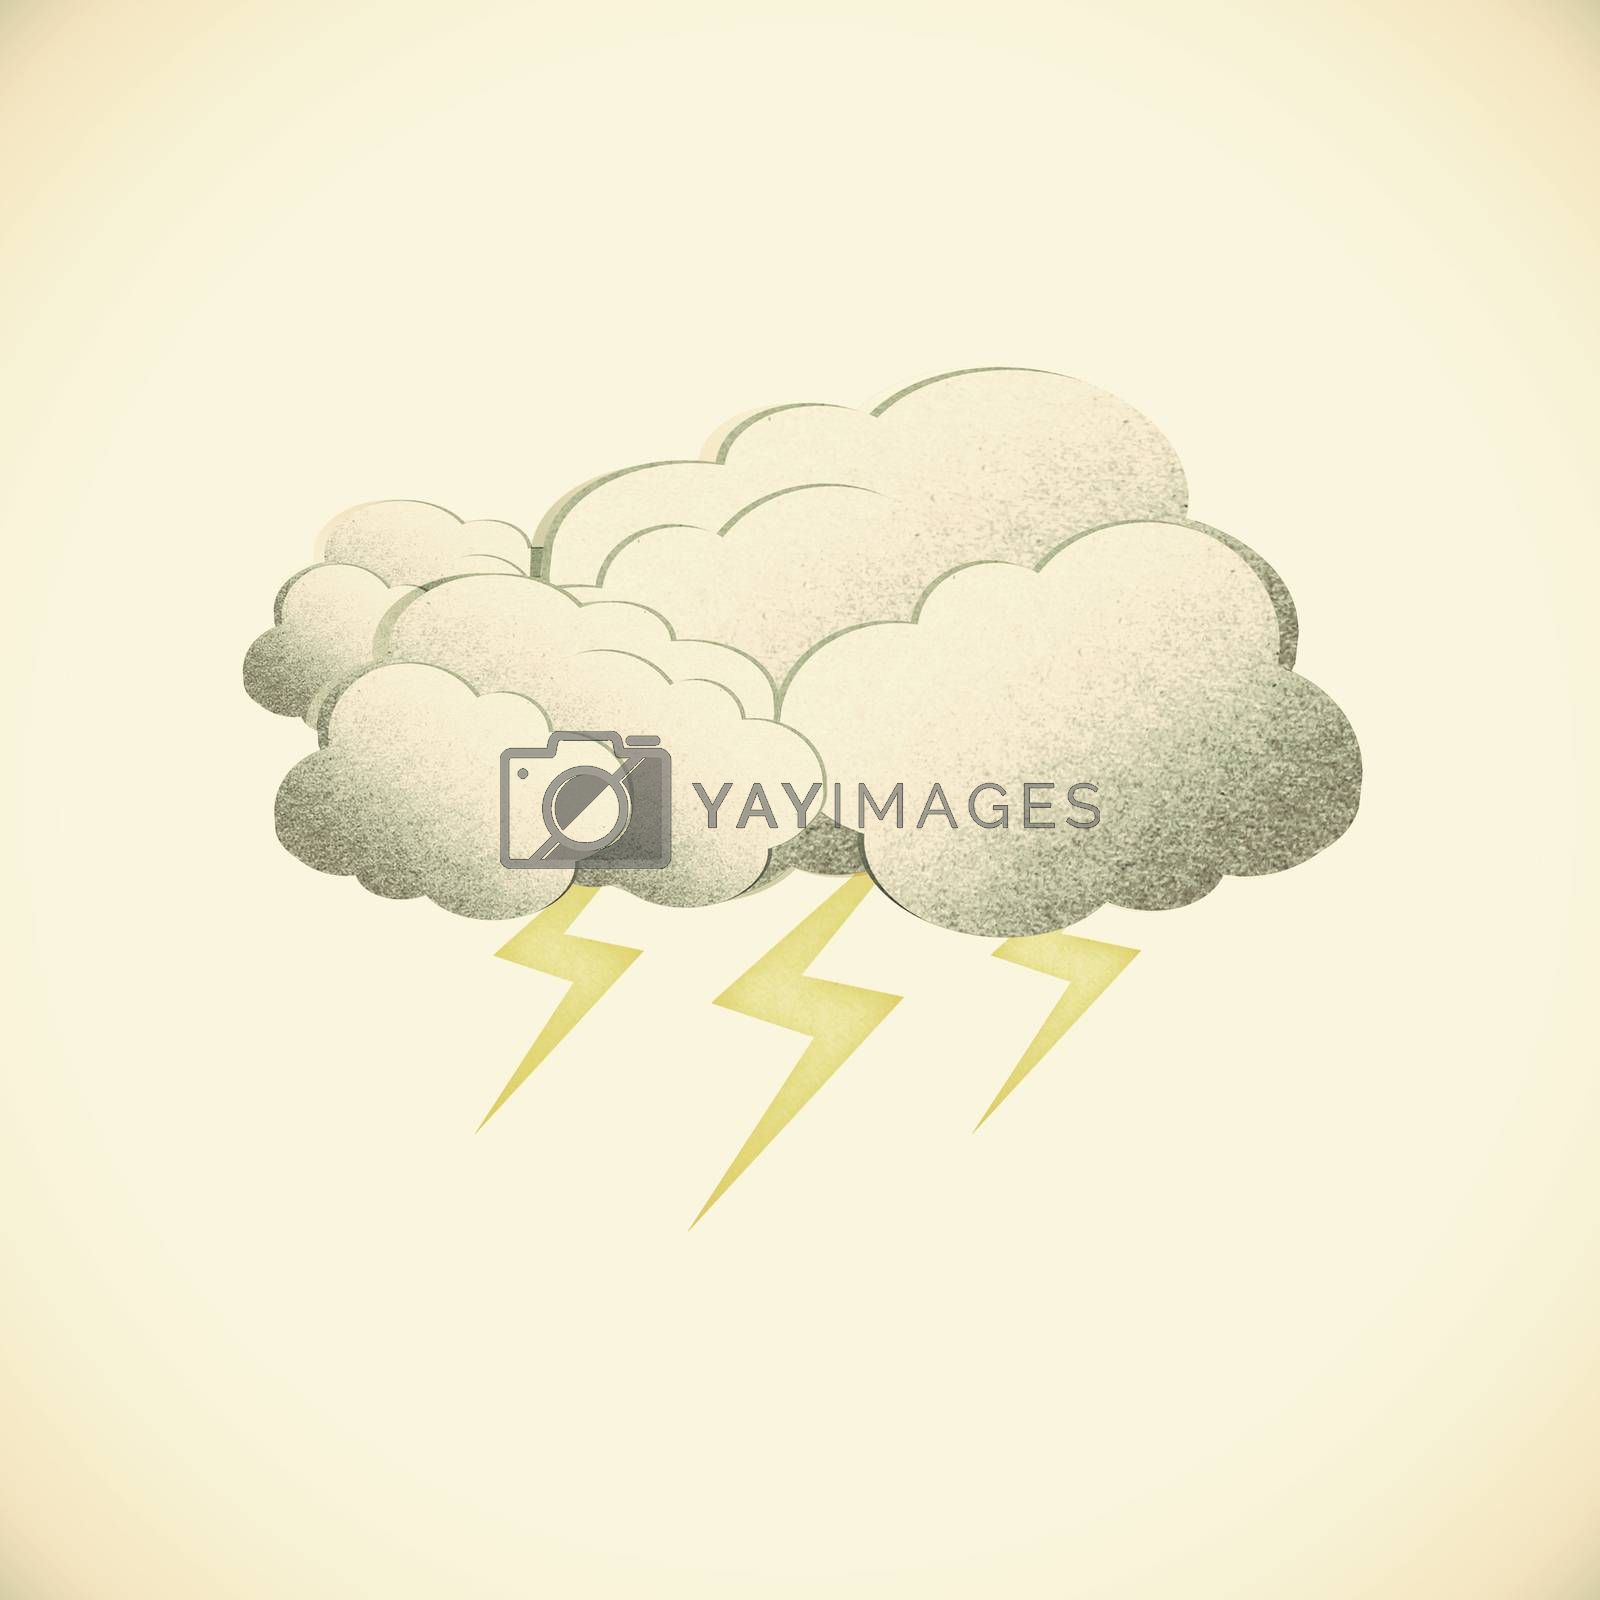 Grunge recycled paper cloud on vintage tone  background by jakgree